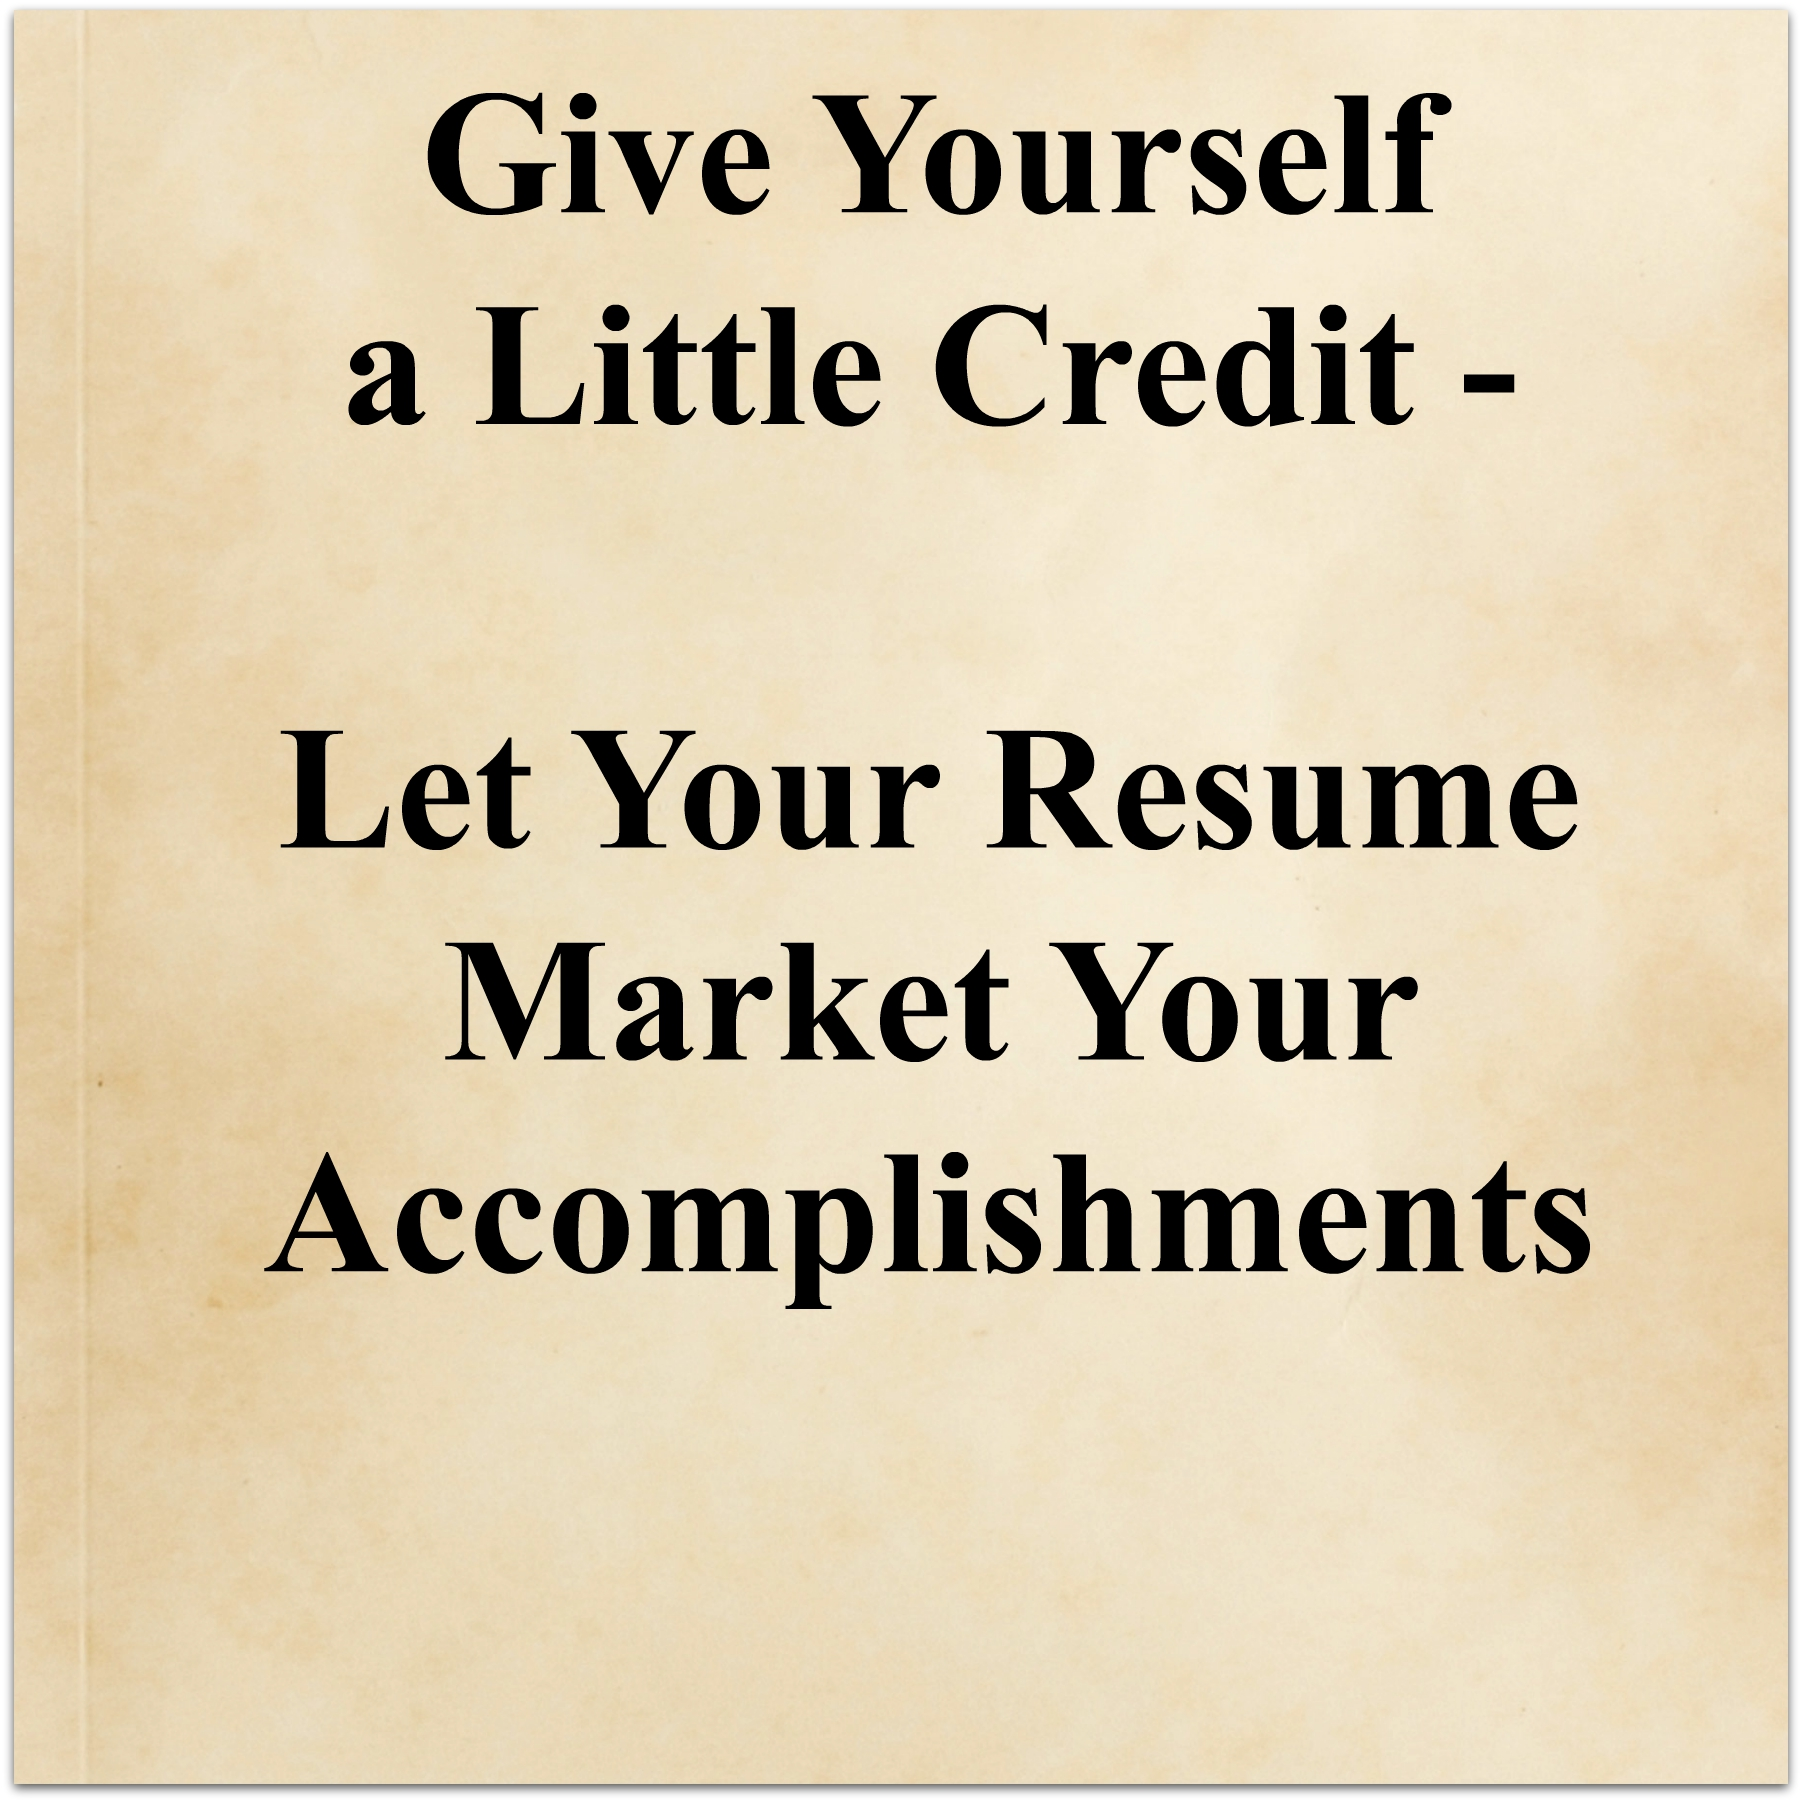 Resume Marketing